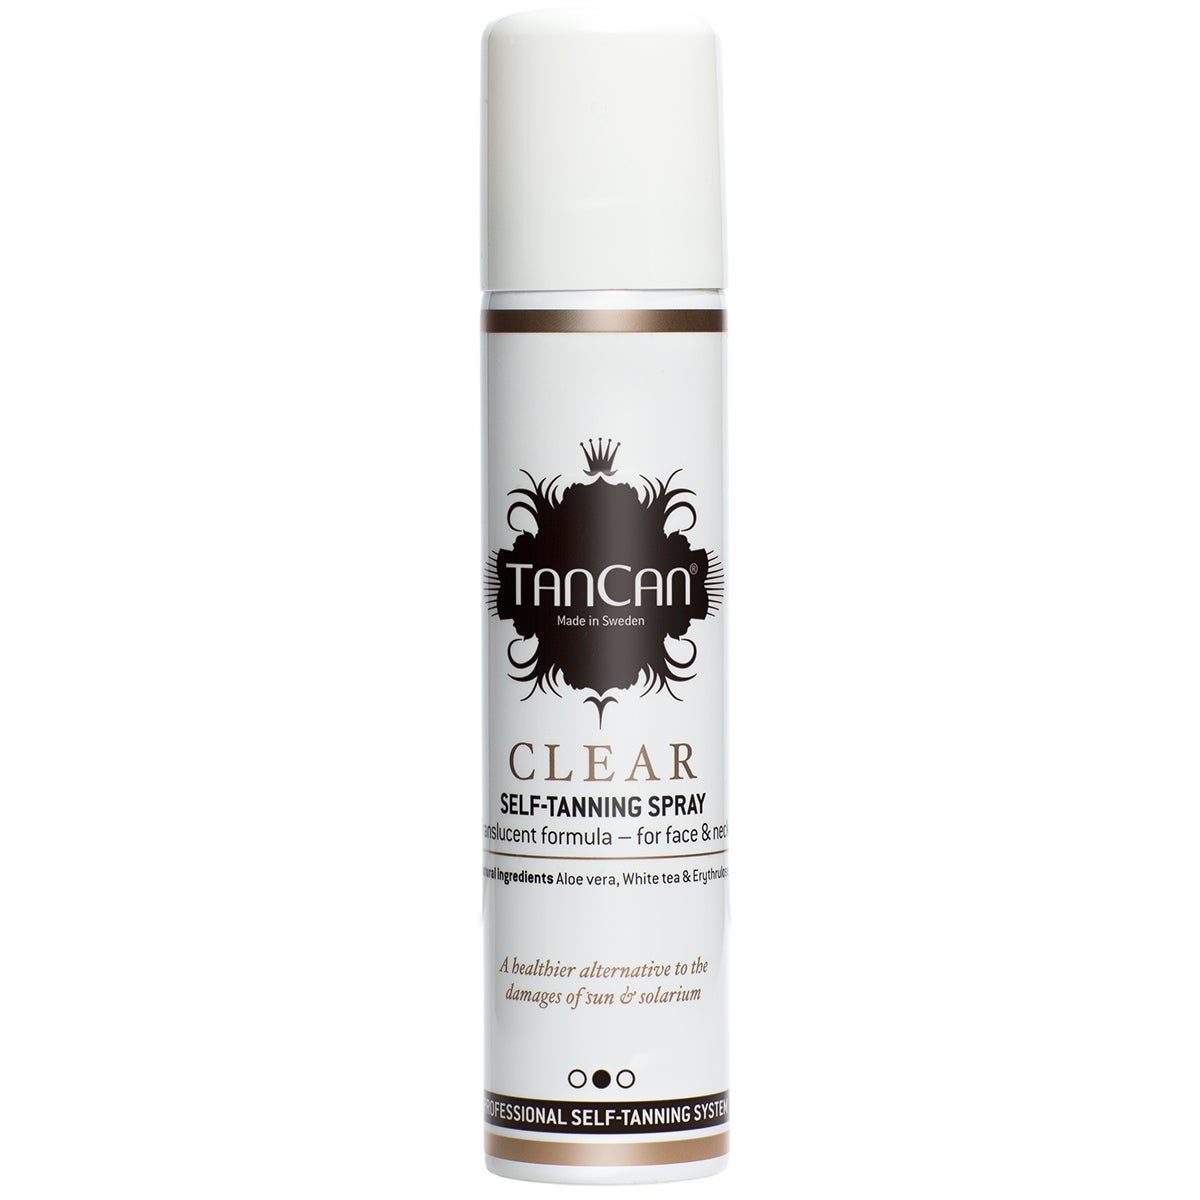 TanCan Clear Self-Tanning Spray